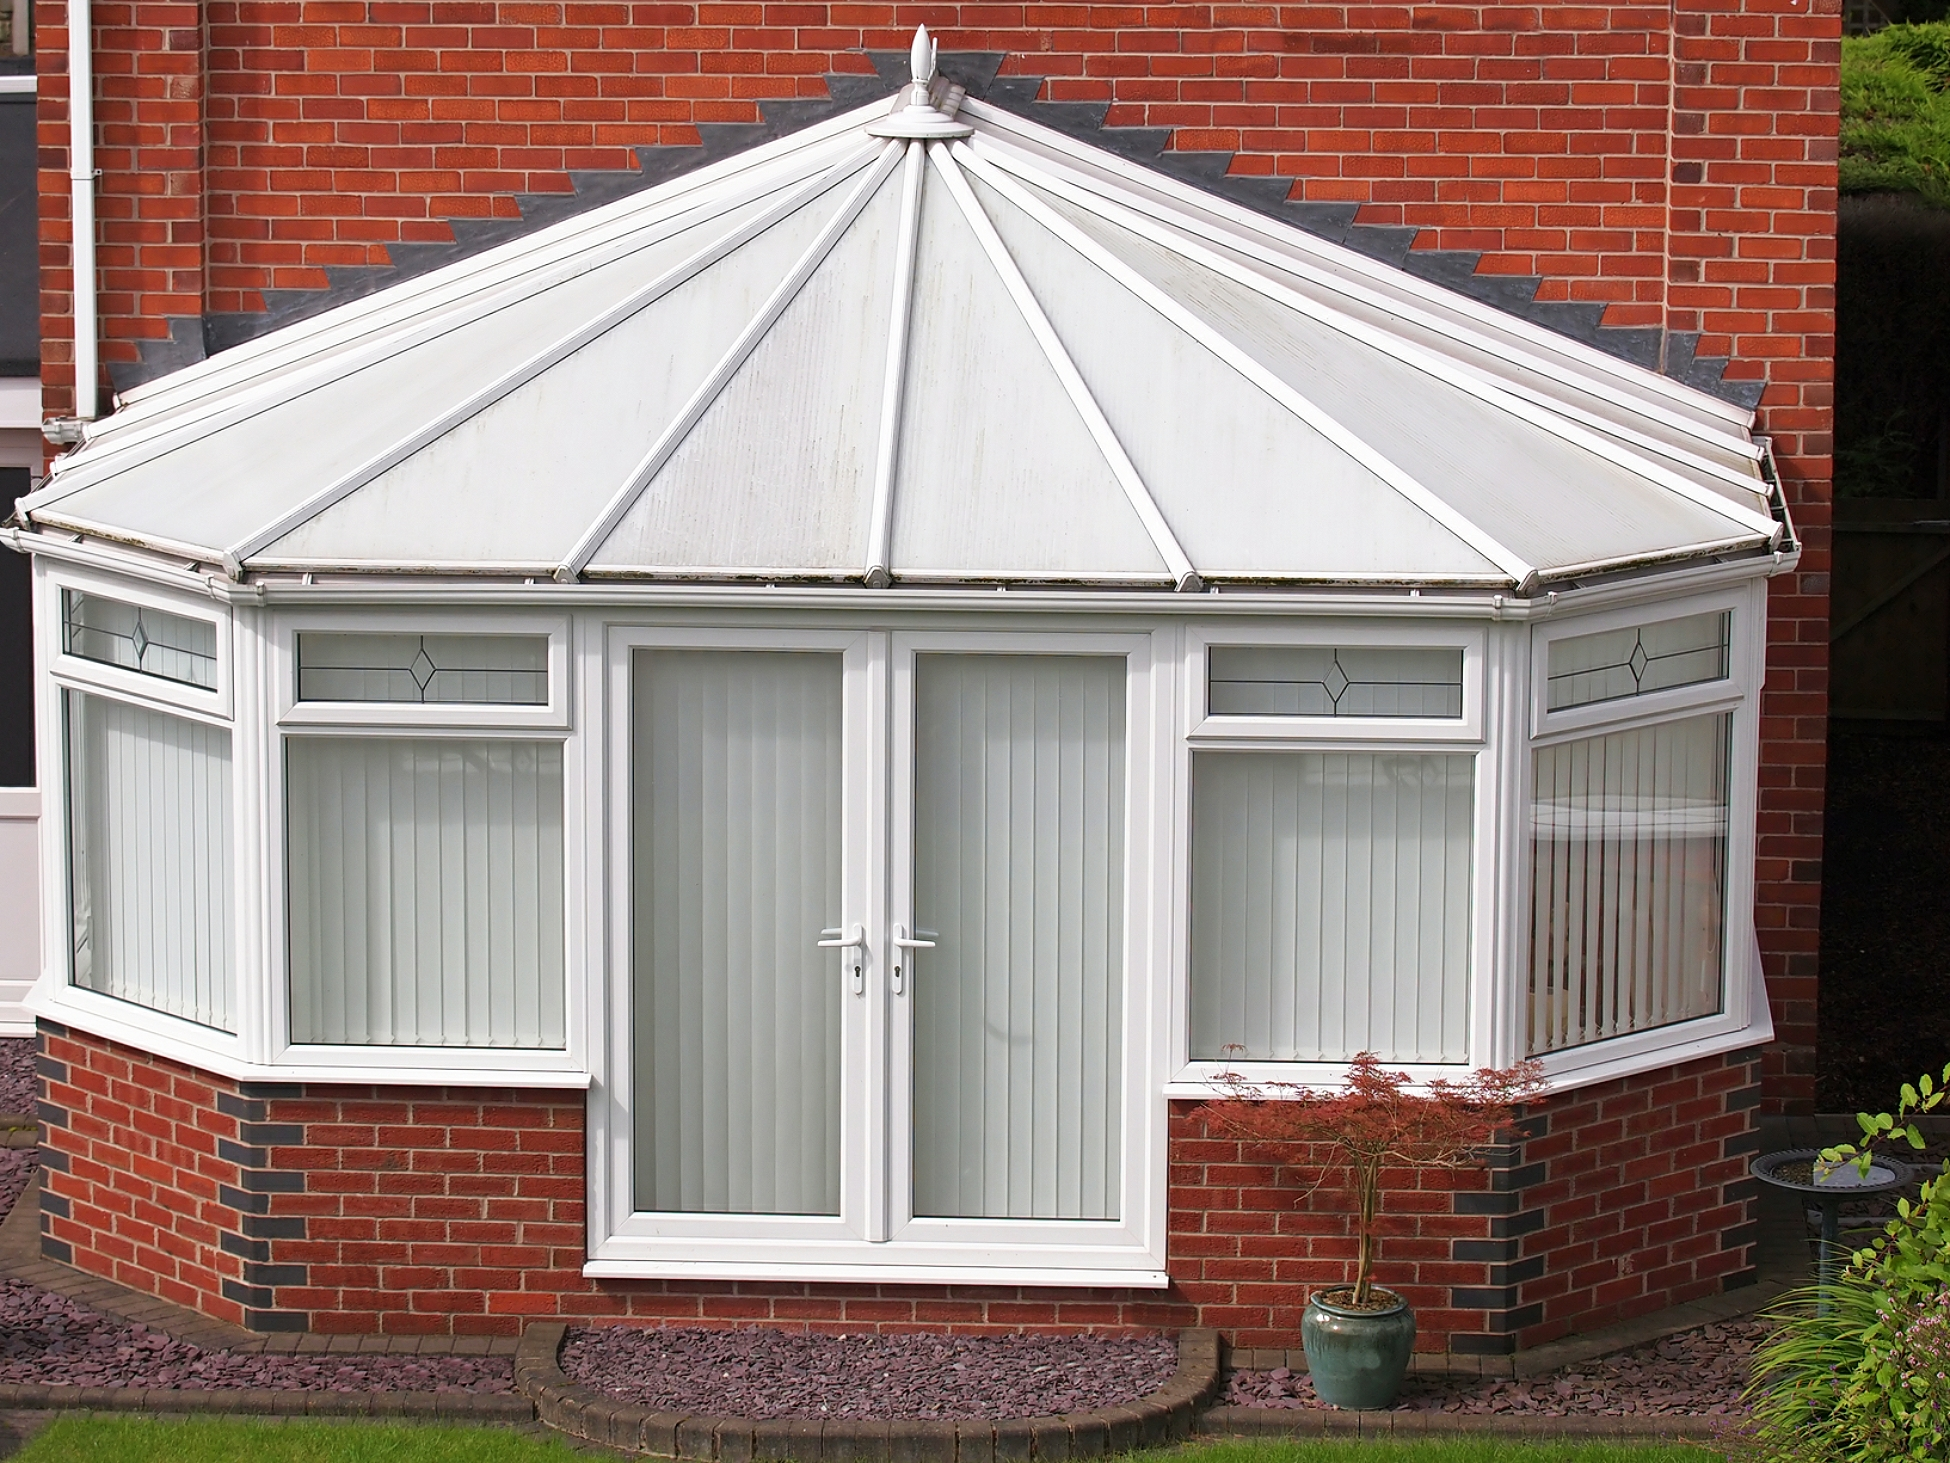 Conservatory roof replacement free conservatory roof prices.